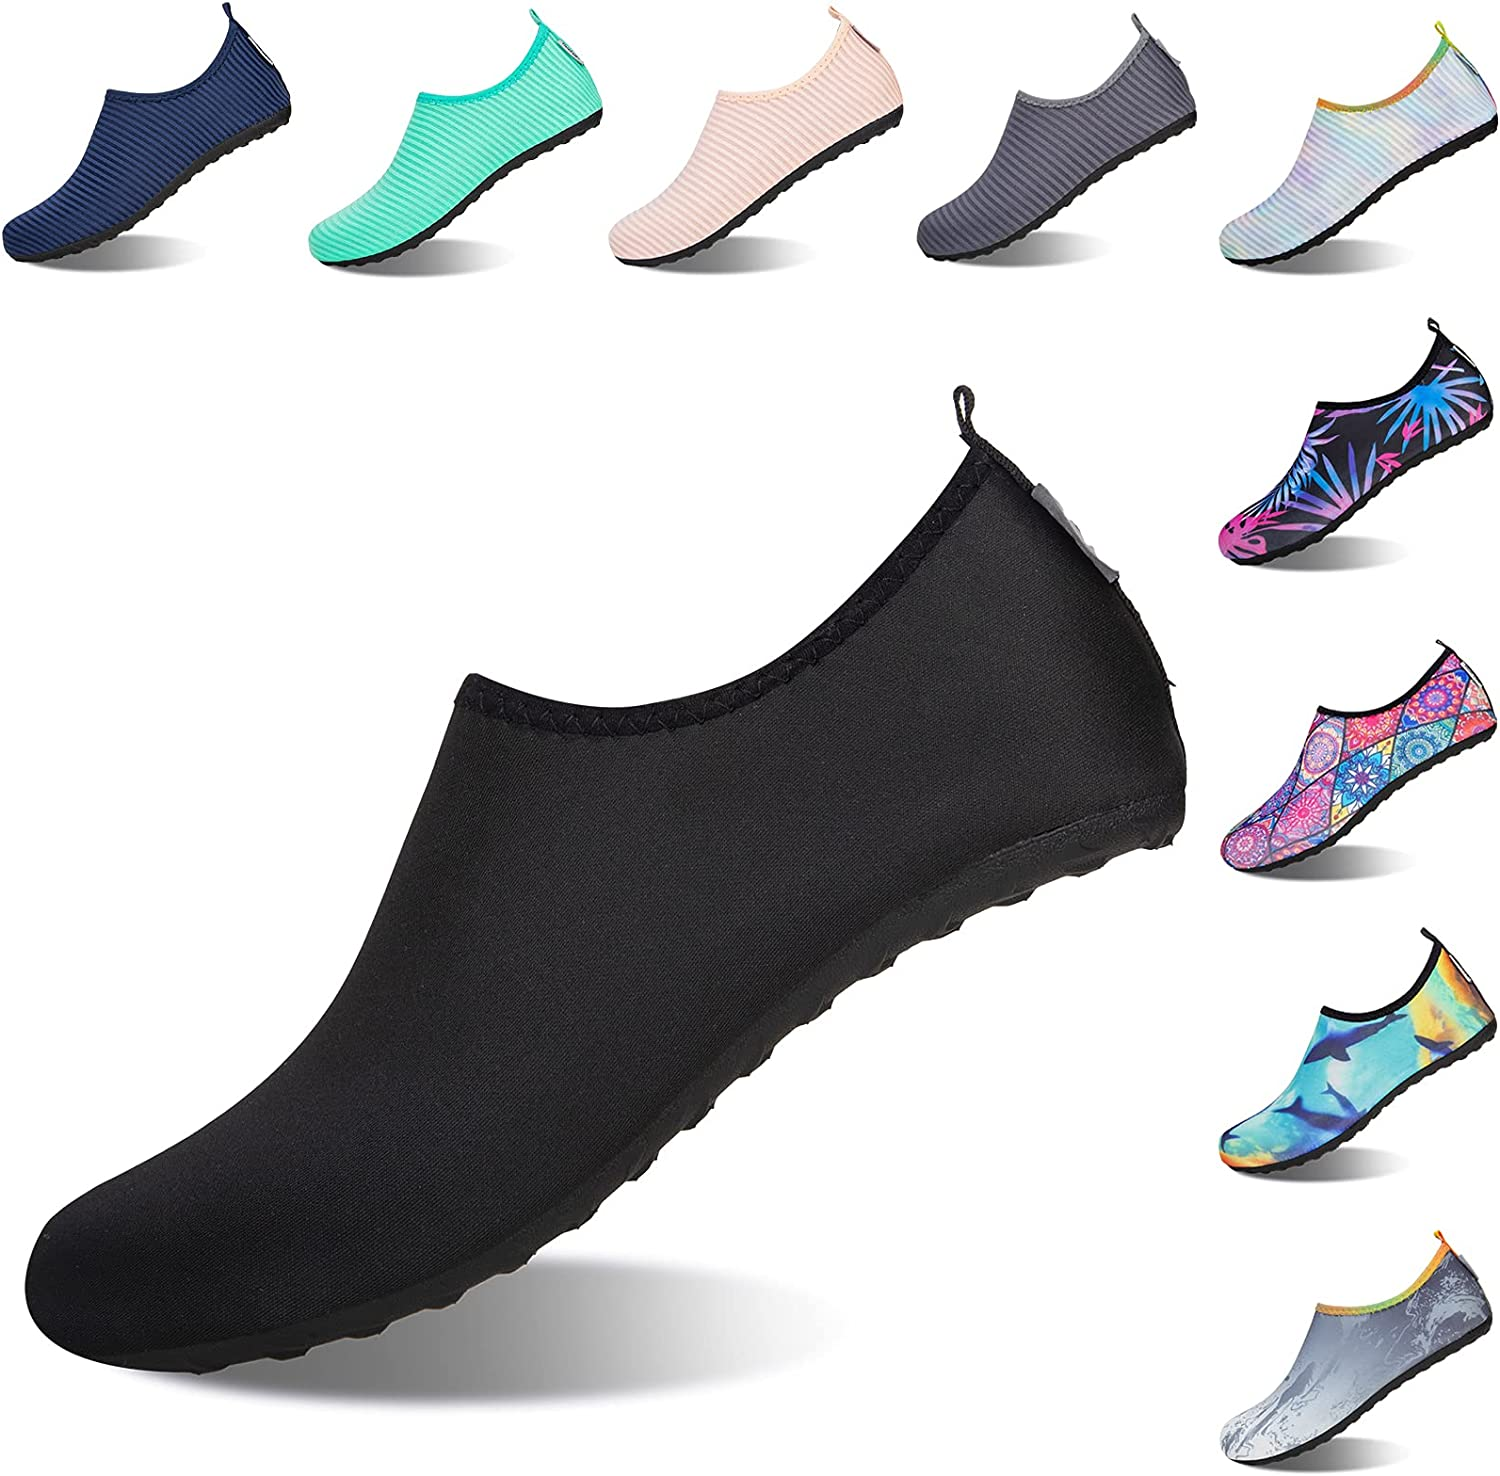 Quick Dry Aqua Phoenix Mall Water Socks Adult Sole fo Shoes Upgraded Weekly update